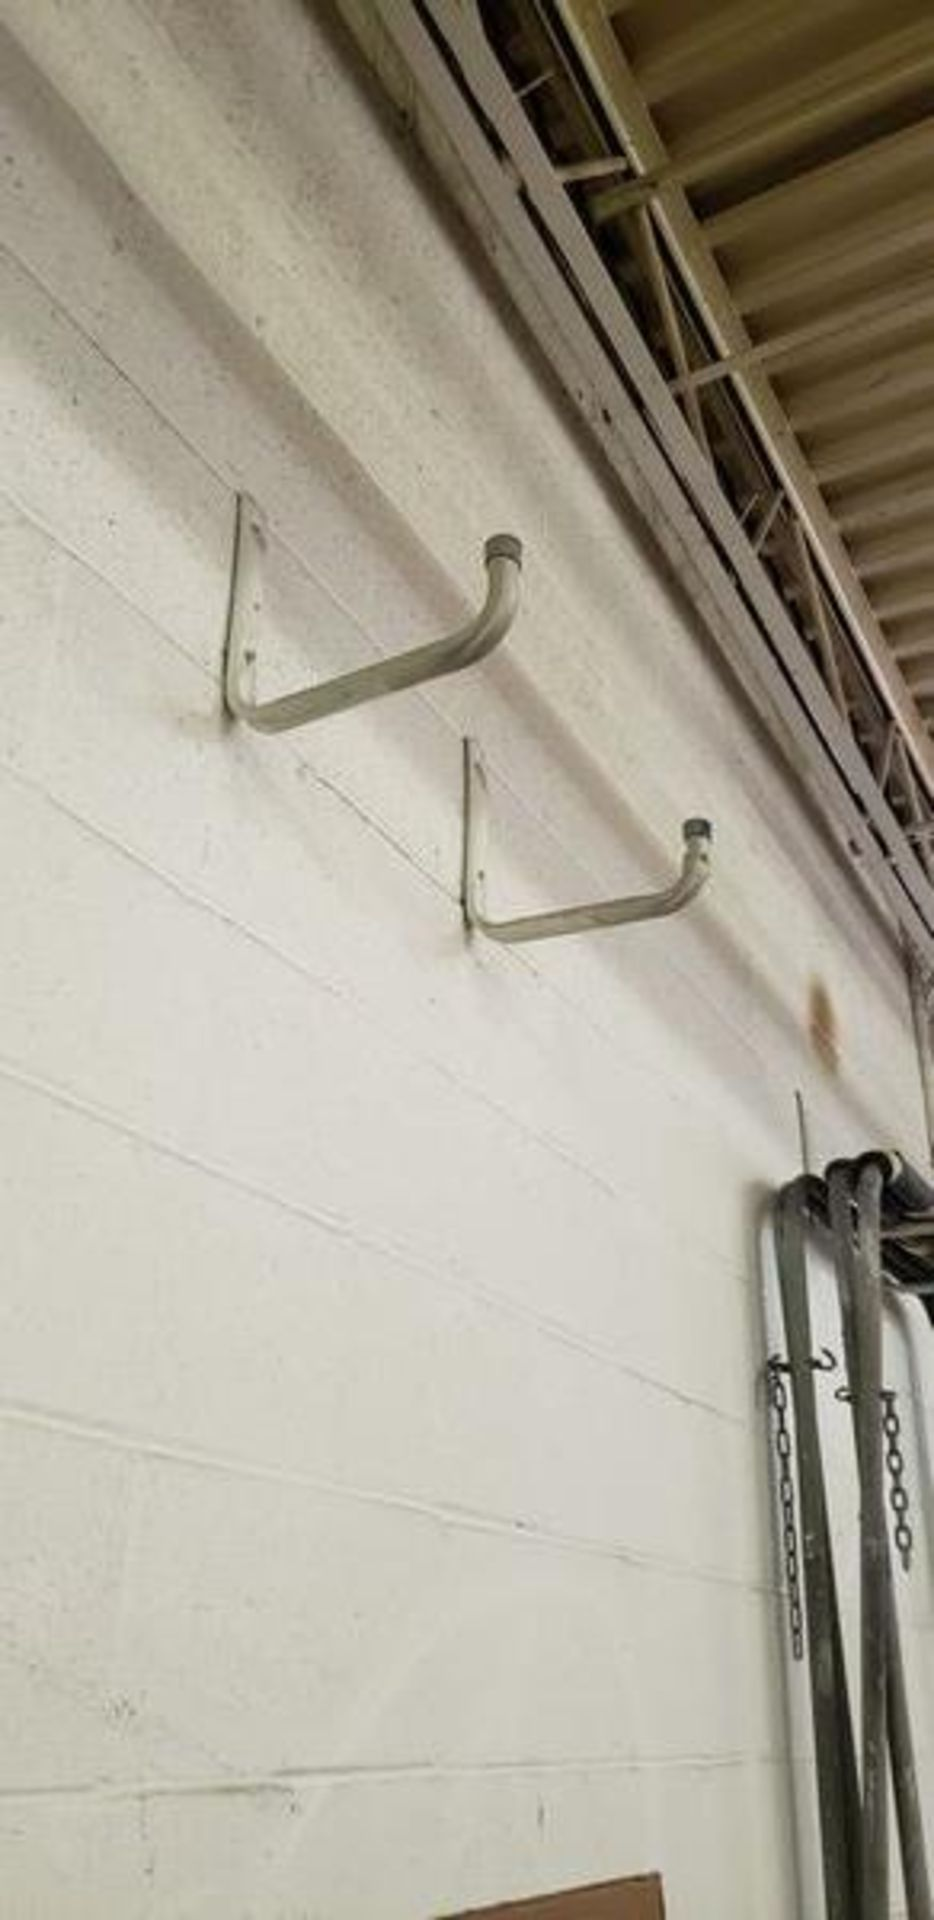 SETS OF WALL HOOKS (BRING TOOLS TO REMOVE)